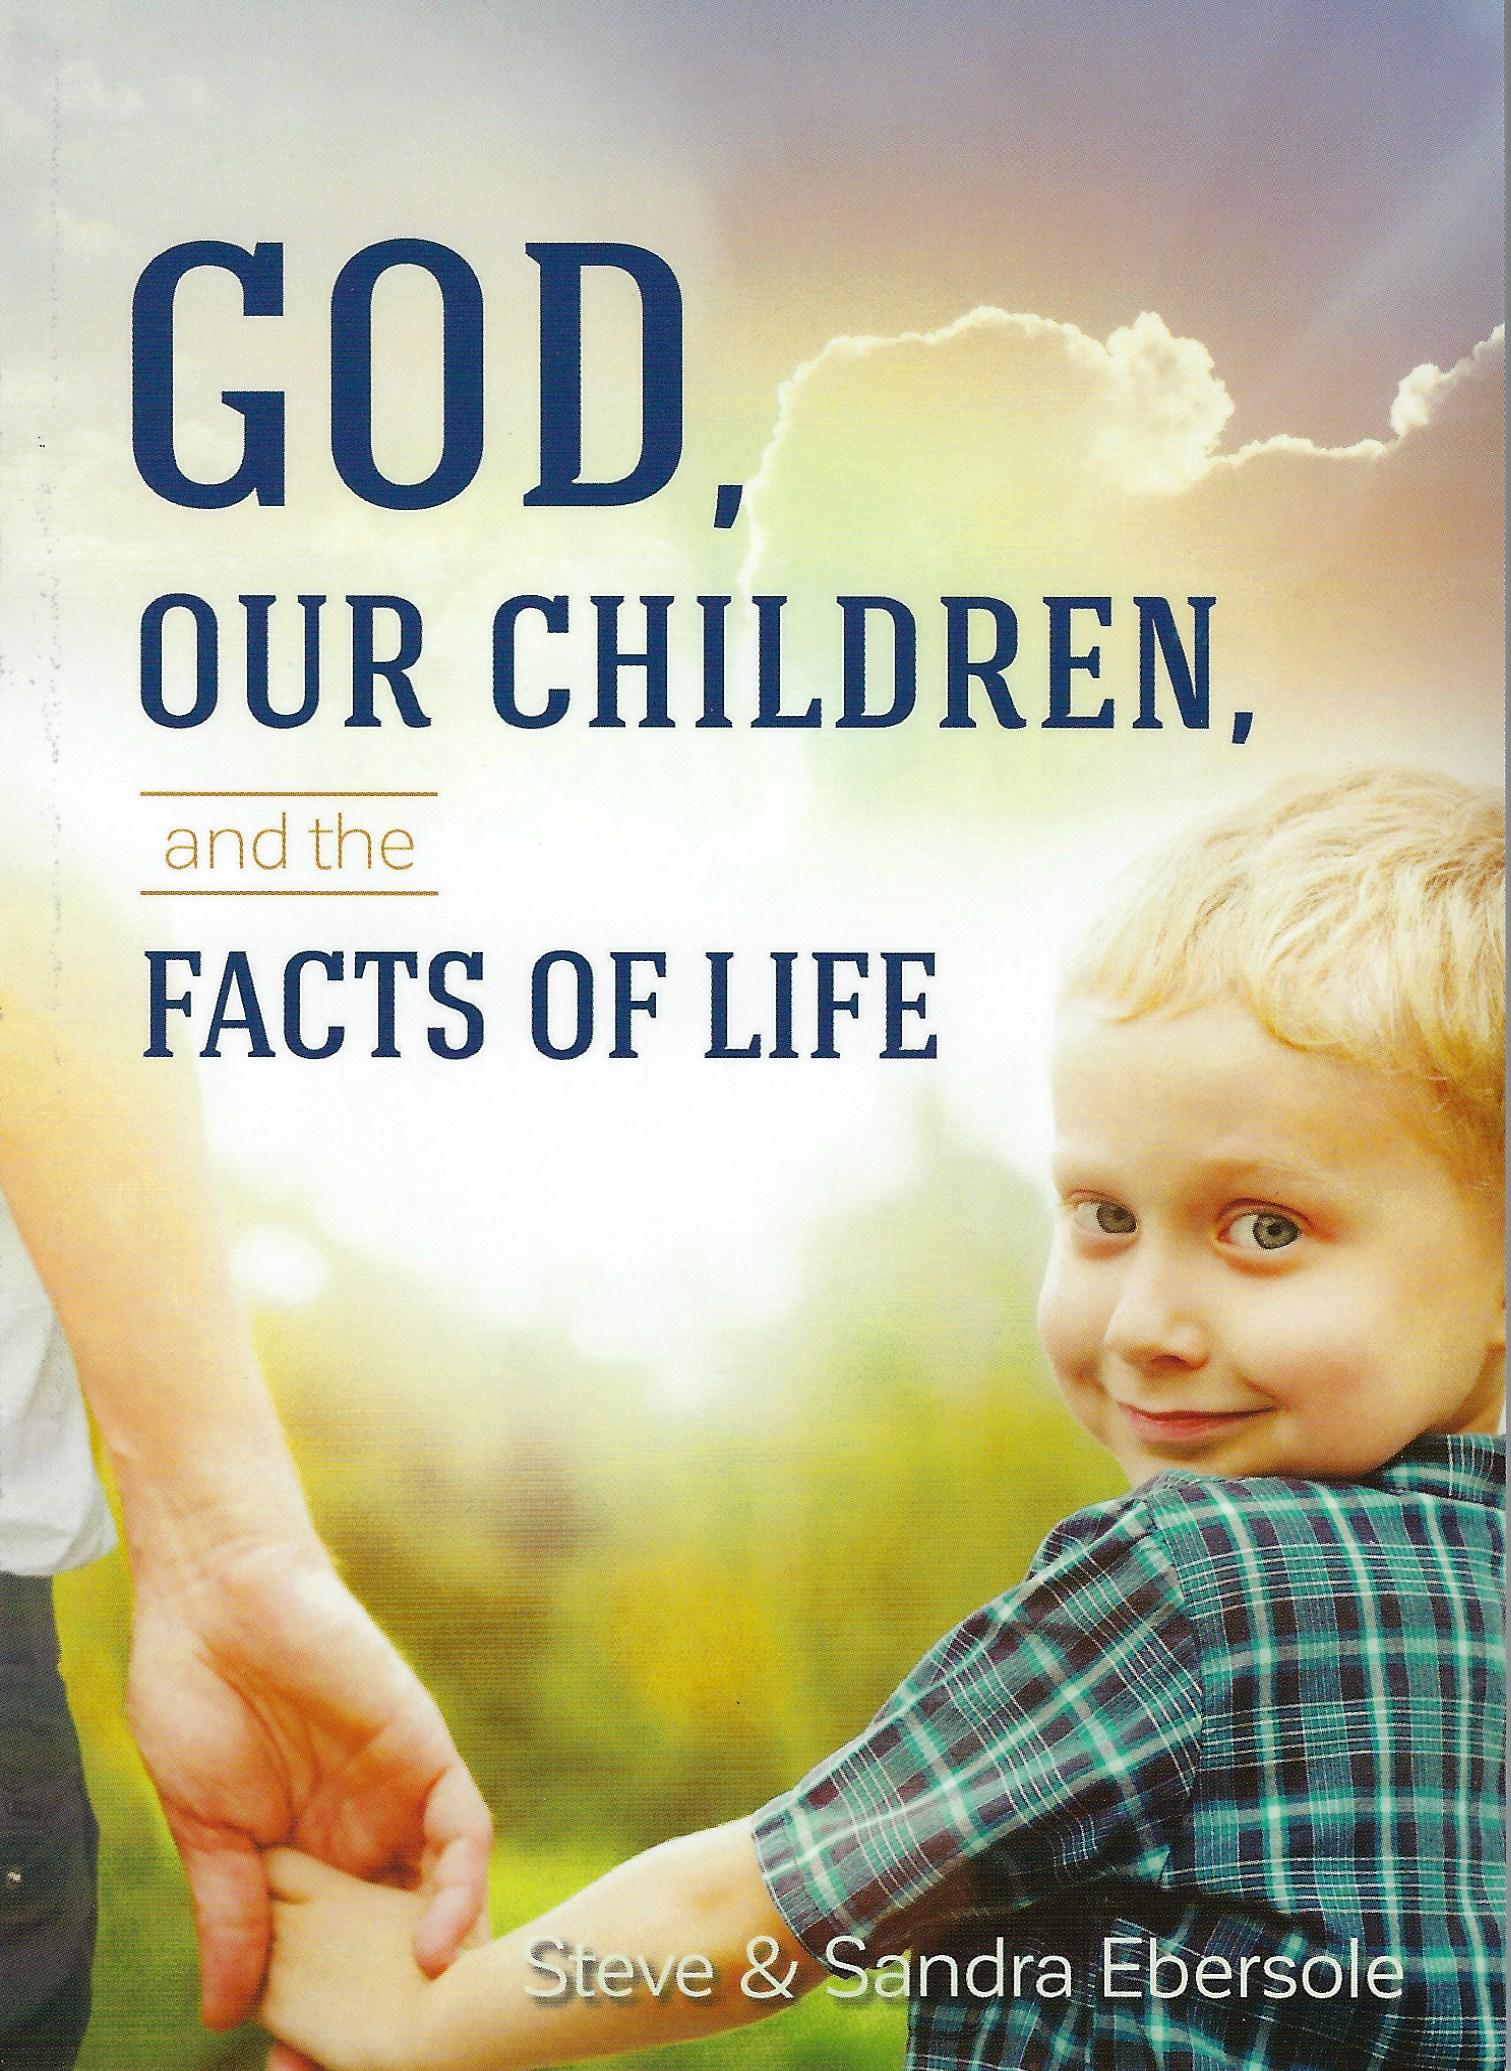 GOD, OUR CHILDREN, & FACTS OF LIFE Steve & Sandra Ebersole